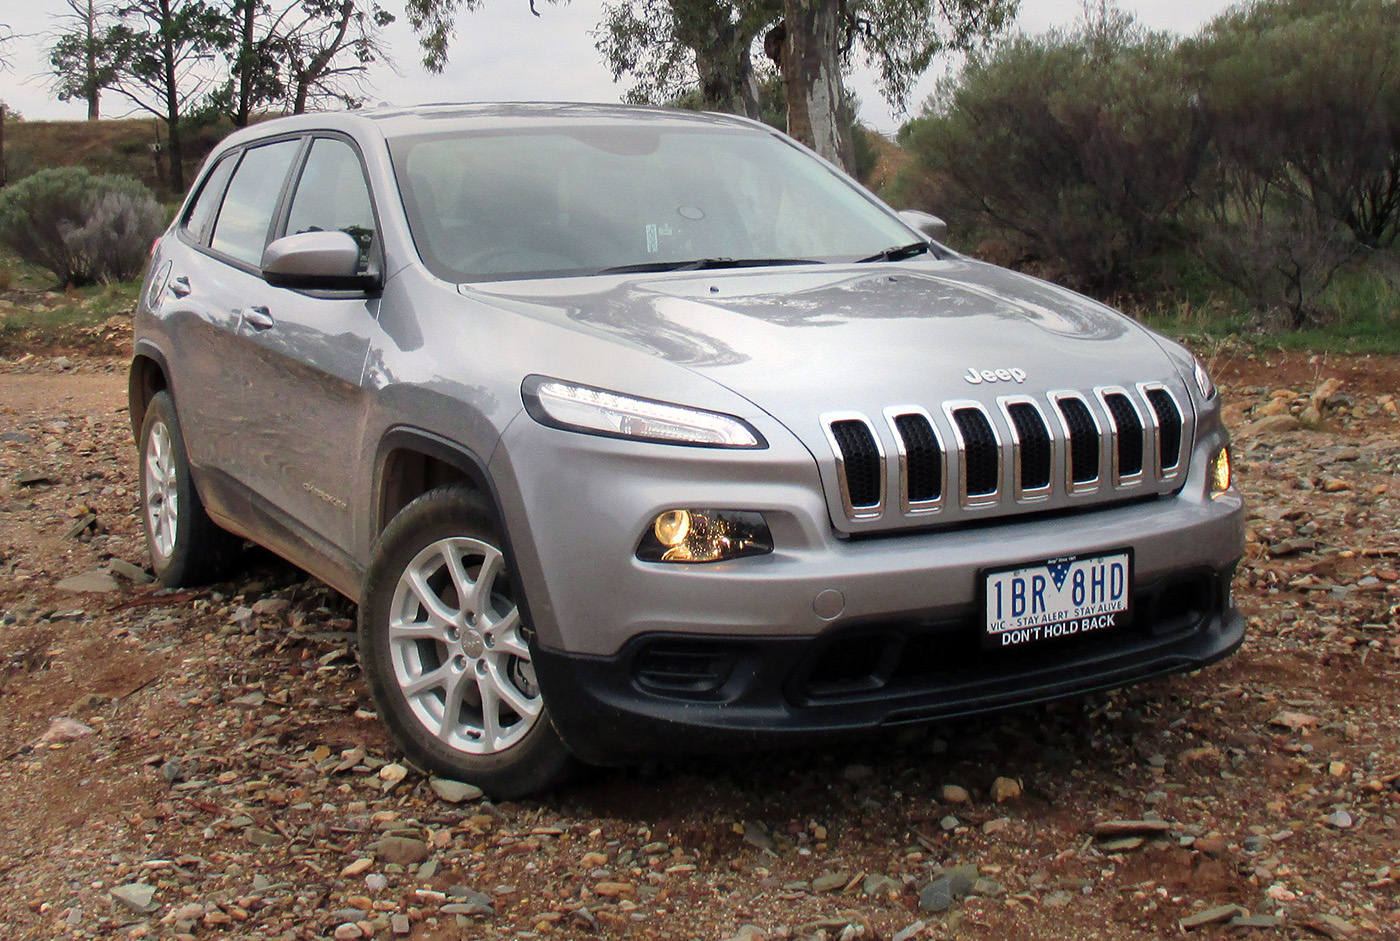 Jeep Cherokee Recalled Over Air Conditioner Hose Issue